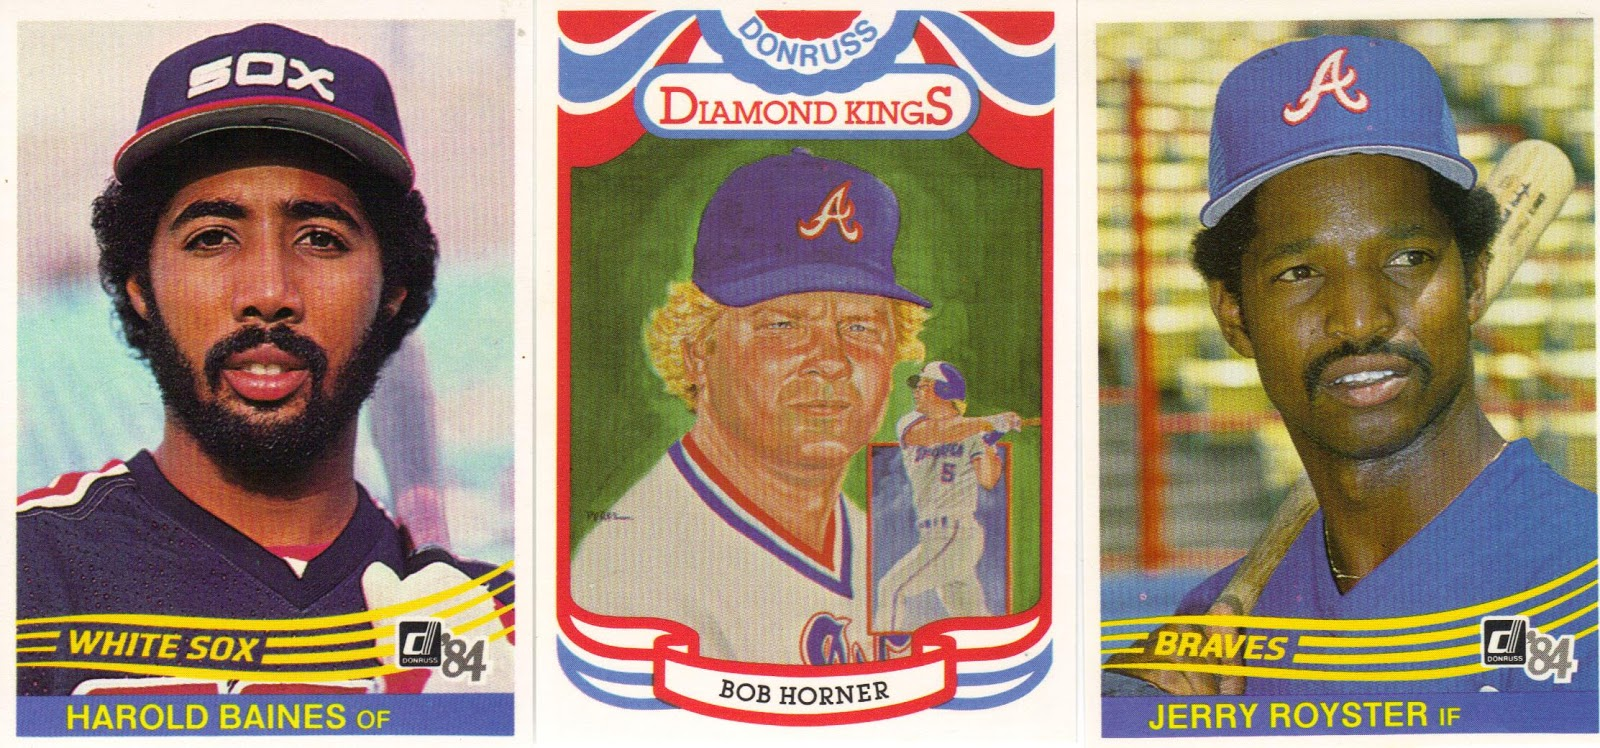 My Favorite Pulls Involved Three Of All Time Favorites Harold Baines Bob Horner And Jerry Royster Is A Great Hitter From His But Not Quite